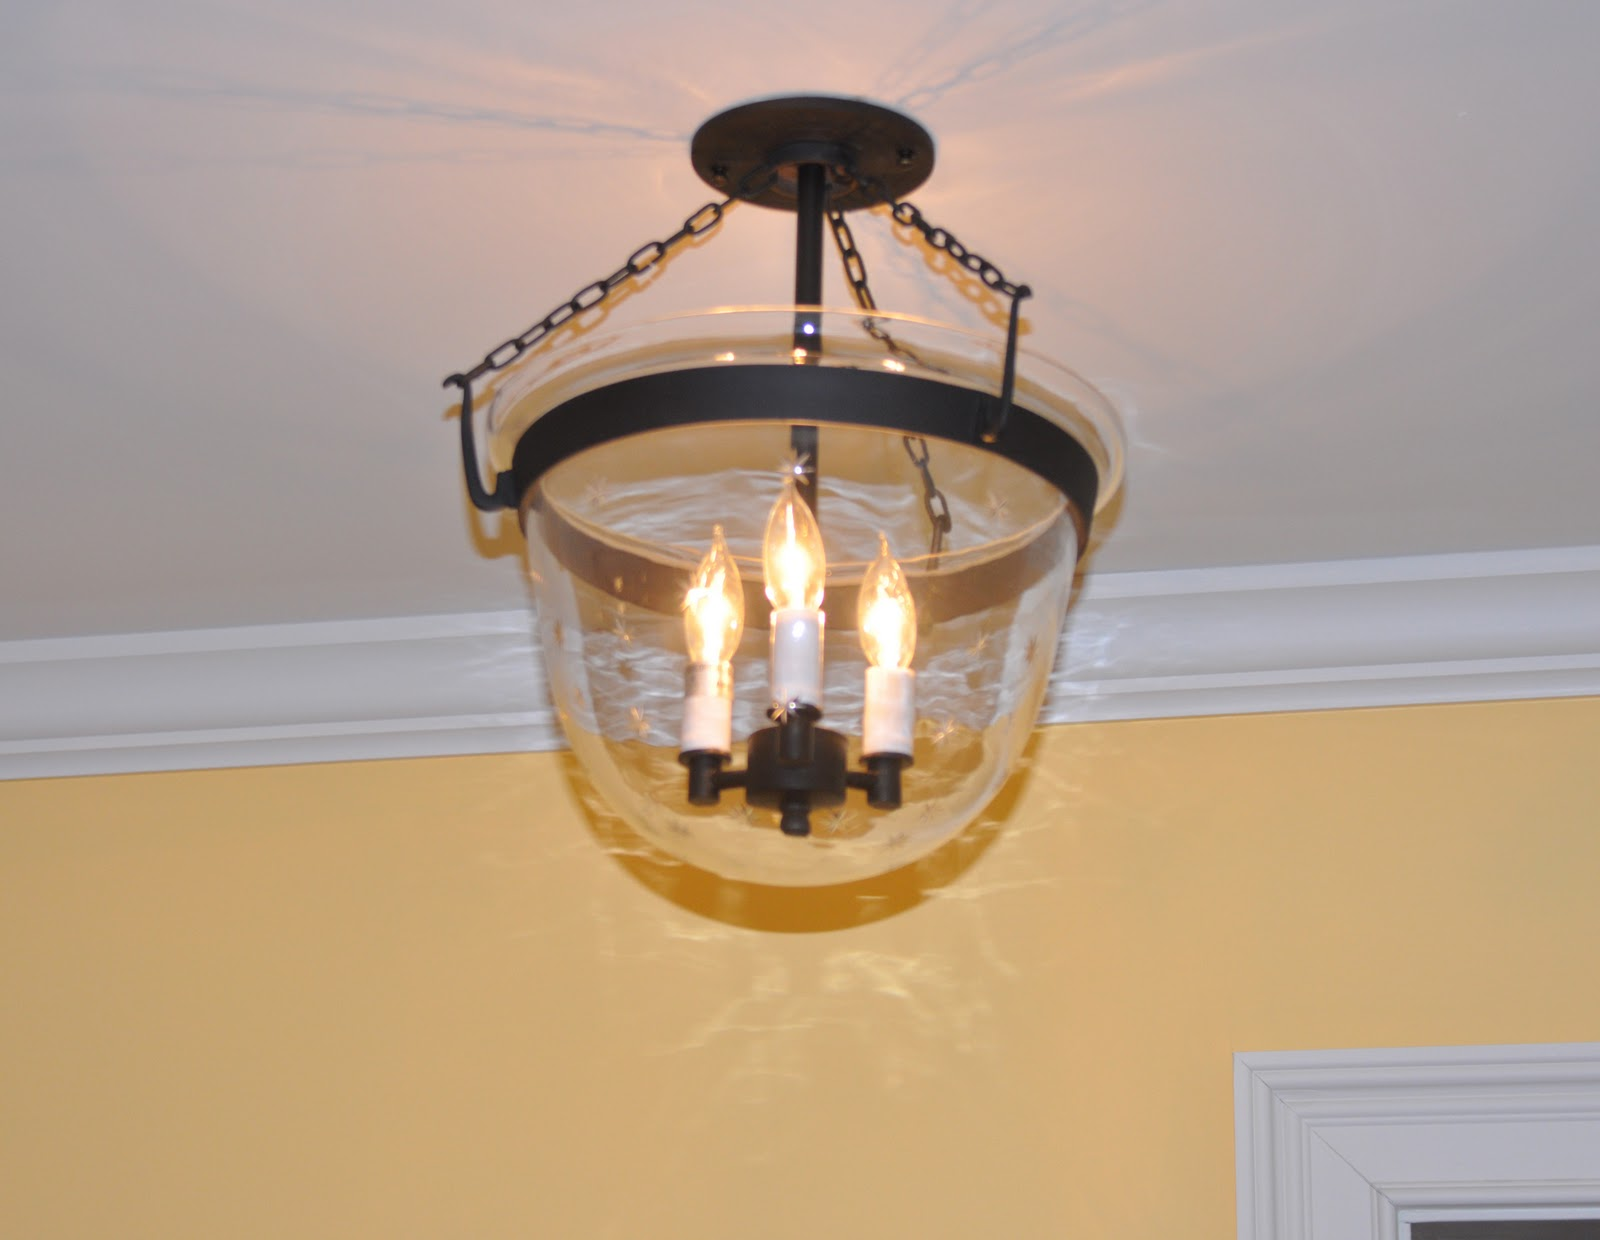 Jvi designs country bell jar with stars customer install photos aloadofball Image collections